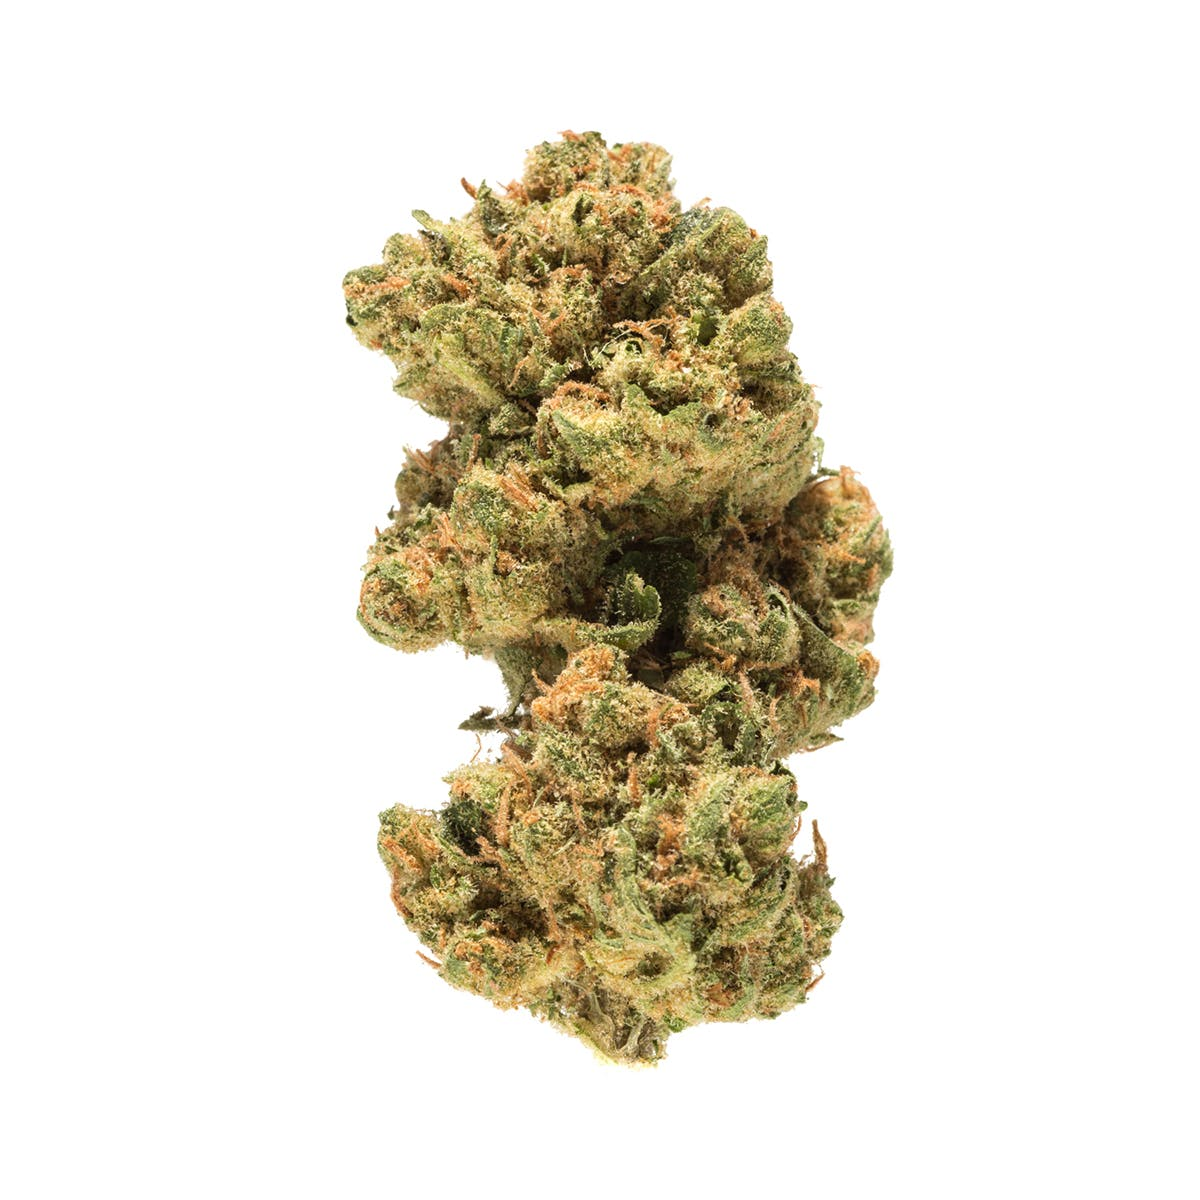 marijuana-dispensaries-the-green-heart-oregon-in-mcminnville-green-crack